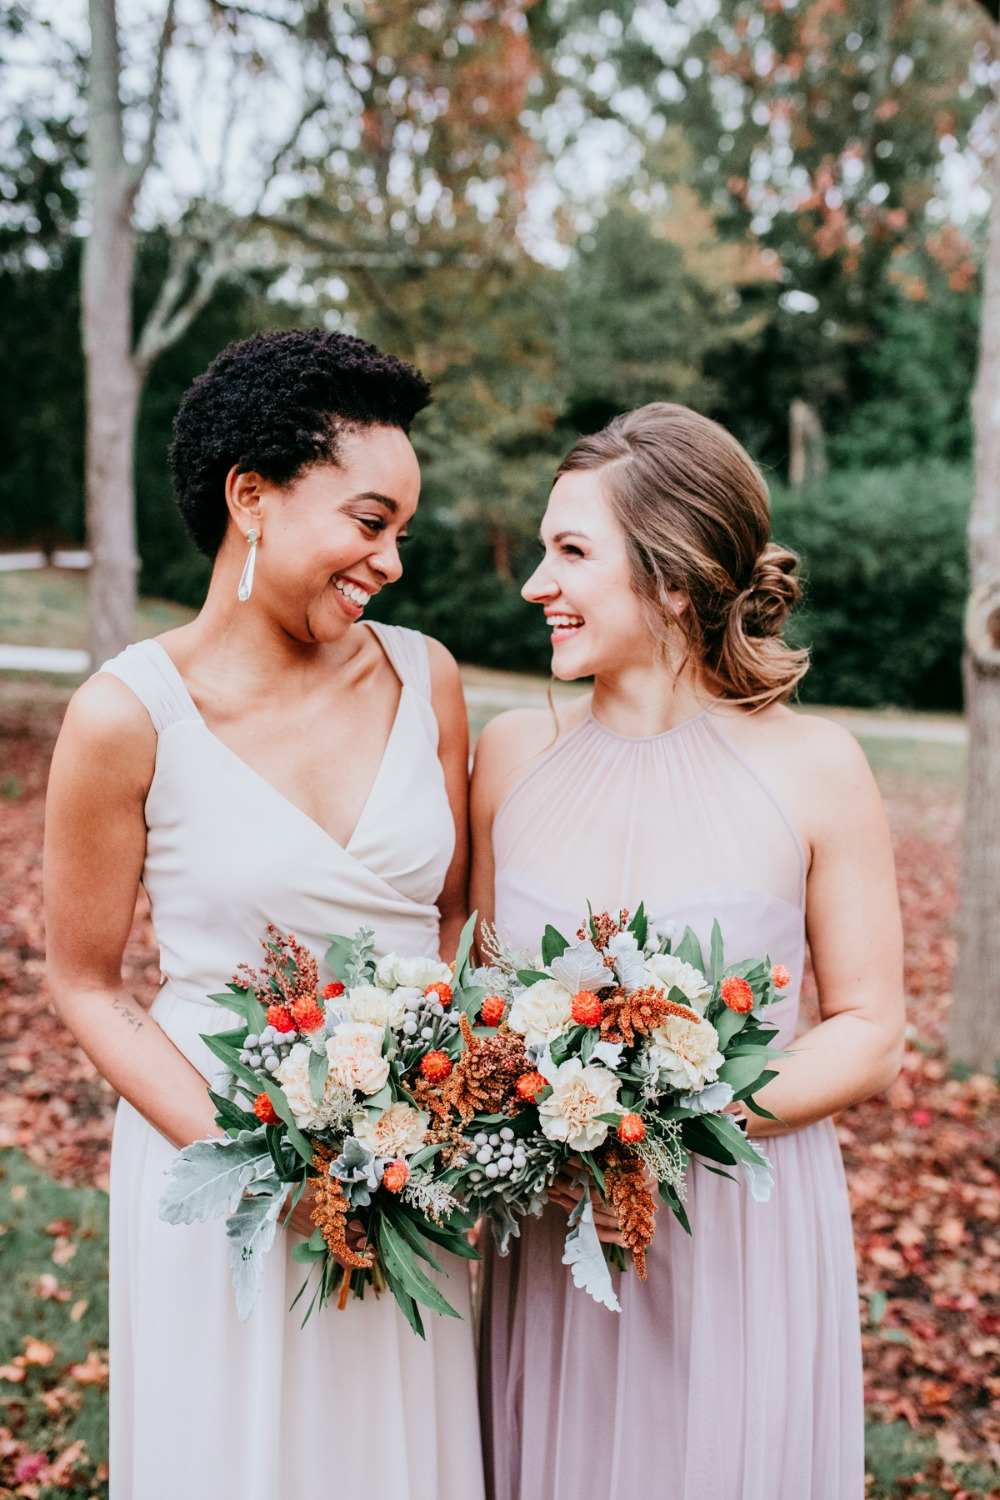 How to Style a Brunch Inspired Wedding